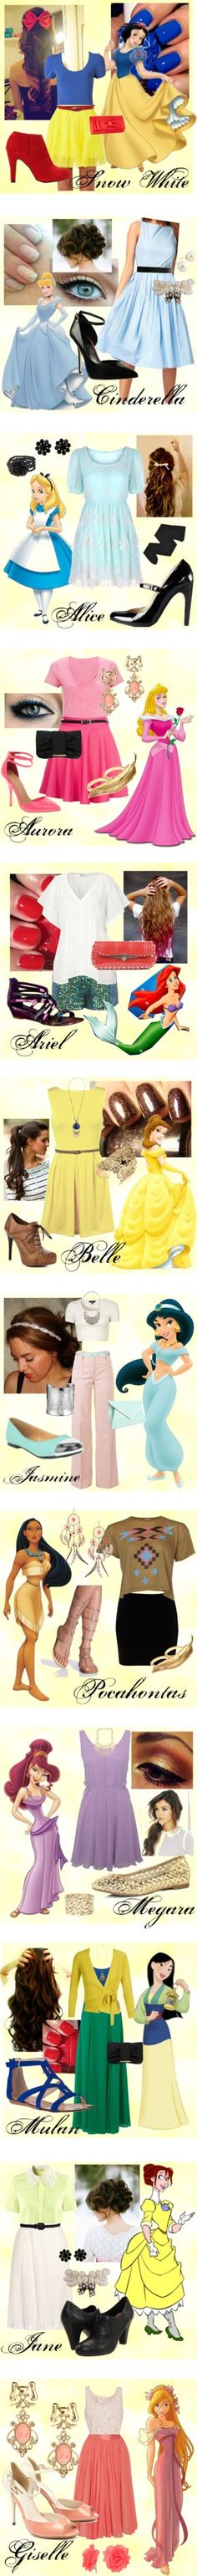 halloween disney costumes. i think snow white is the best option.